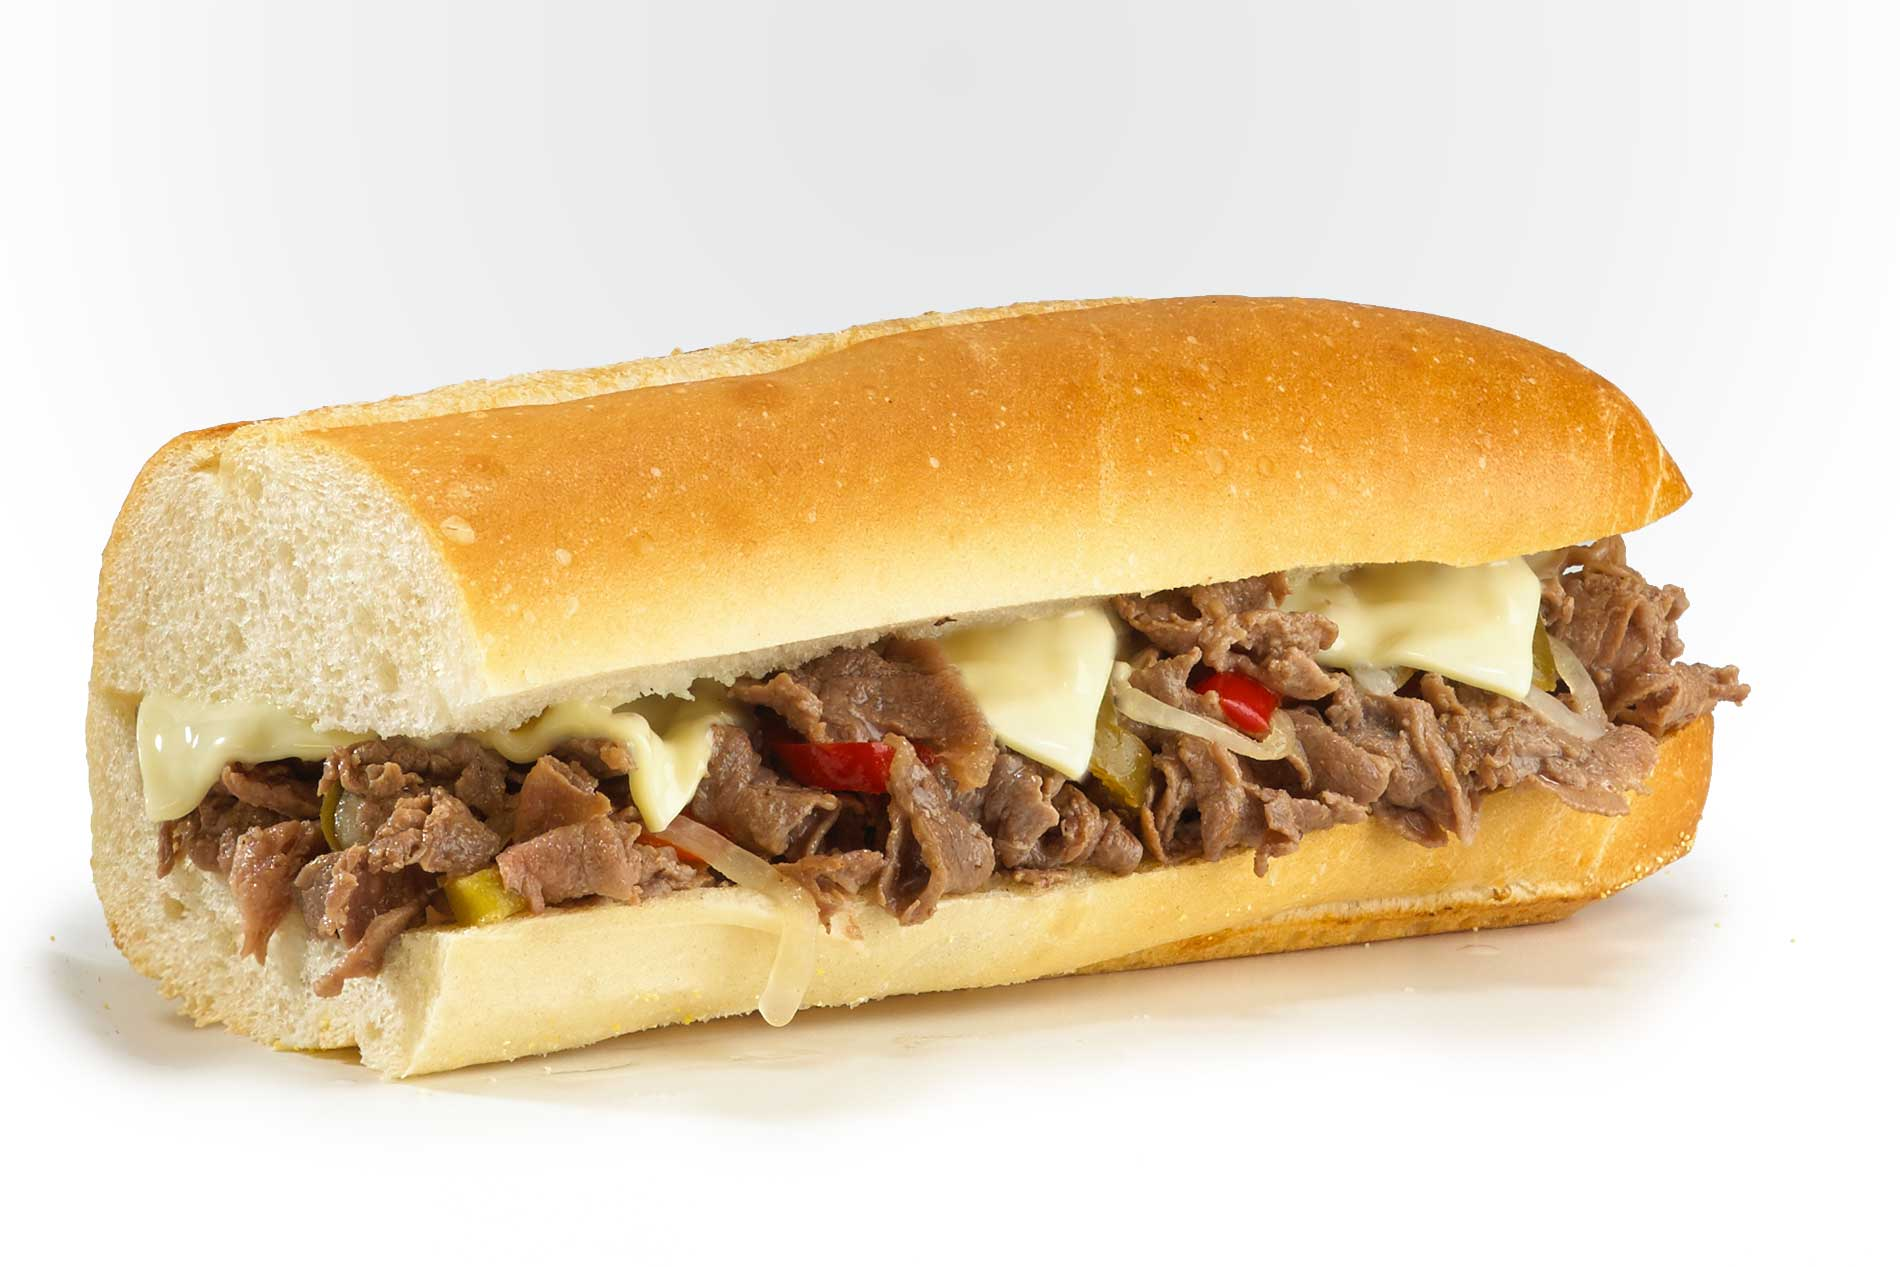 Jersey Mike's philly cheesesteak